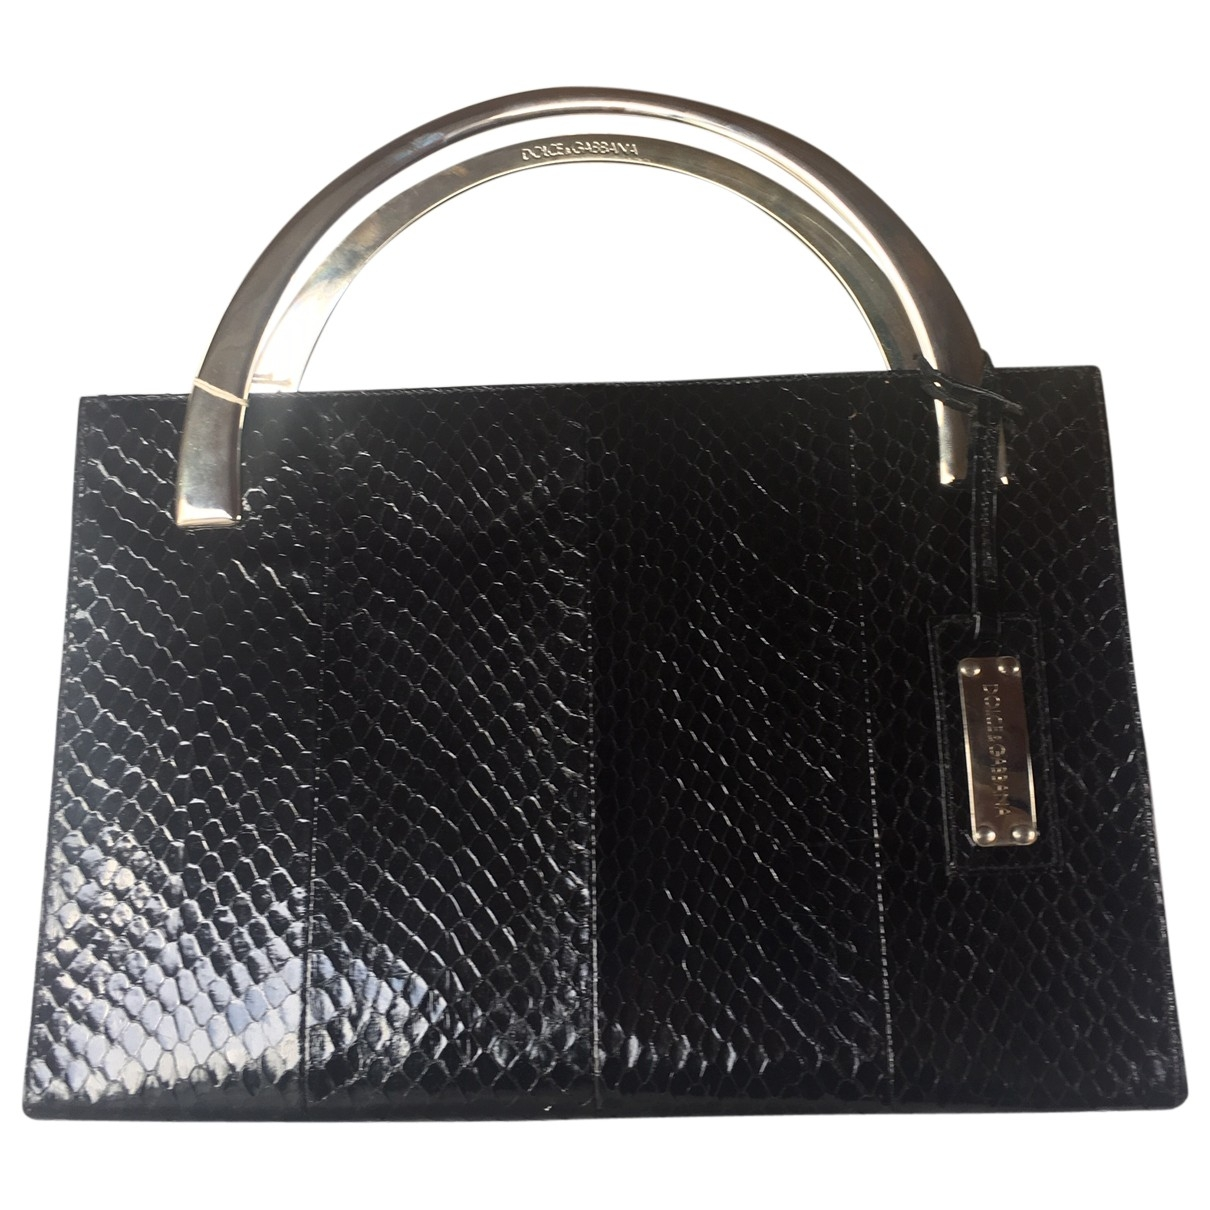 Dolce & Gabbana \N Black Python handbag for Women \N